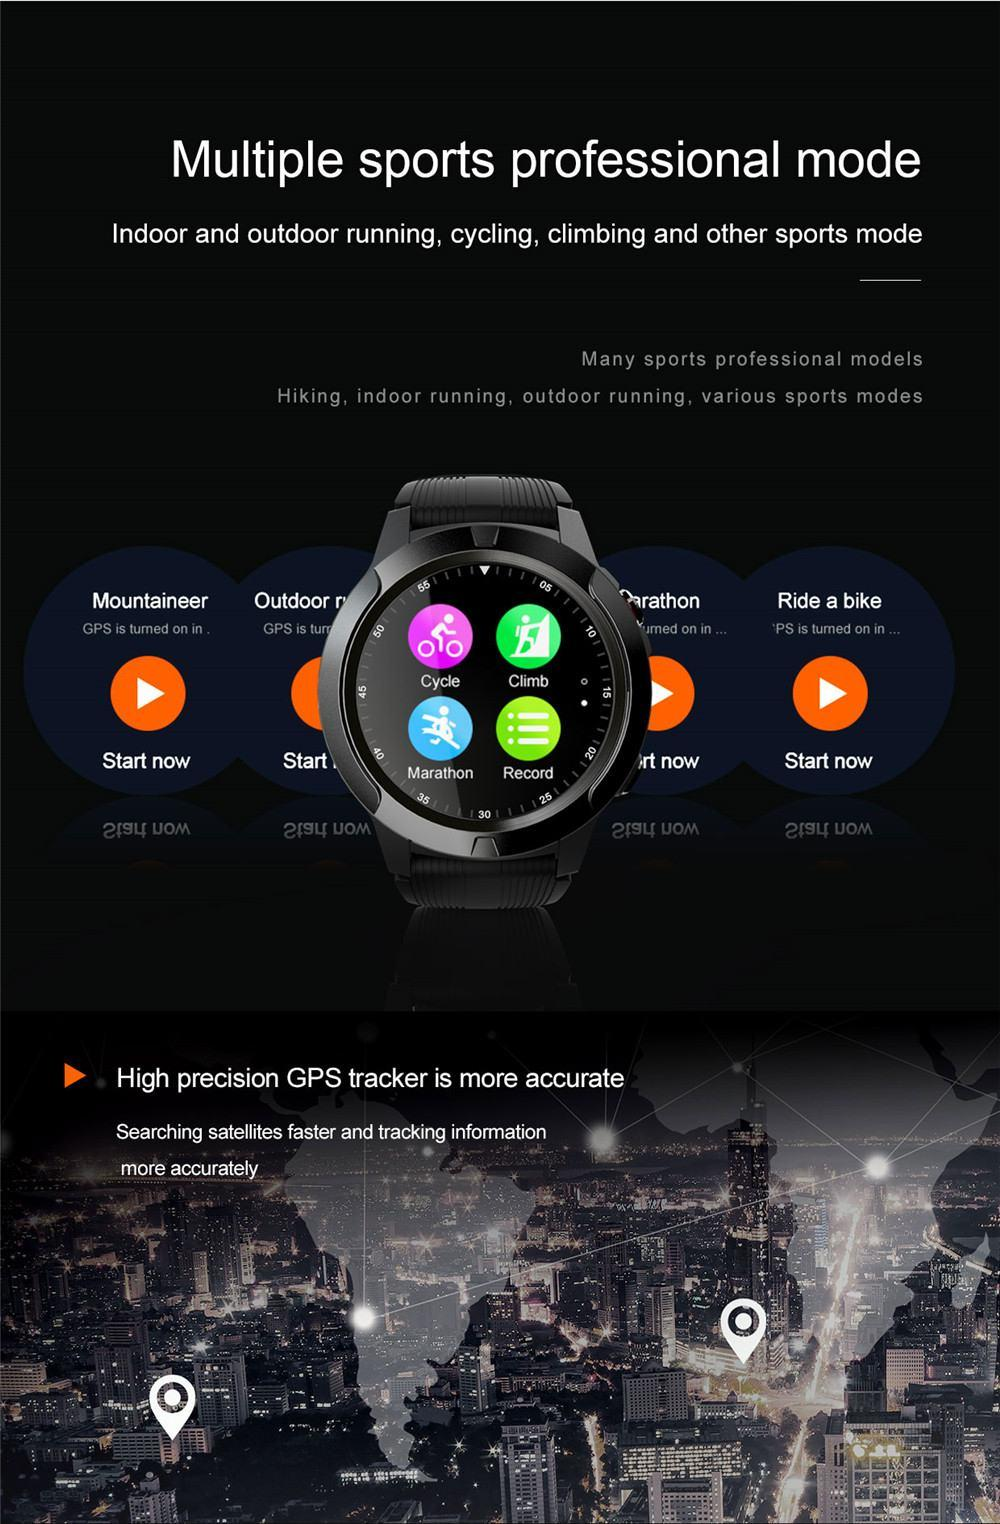 Hb629d1aaeef74e70aa94fbd73b21a609a 2020 Built-in GPS Smart Watch GSM bluetooth Call Phone Air Pressure Heart Rate Blood Pressure Weather Monitor Sport Smartwatch